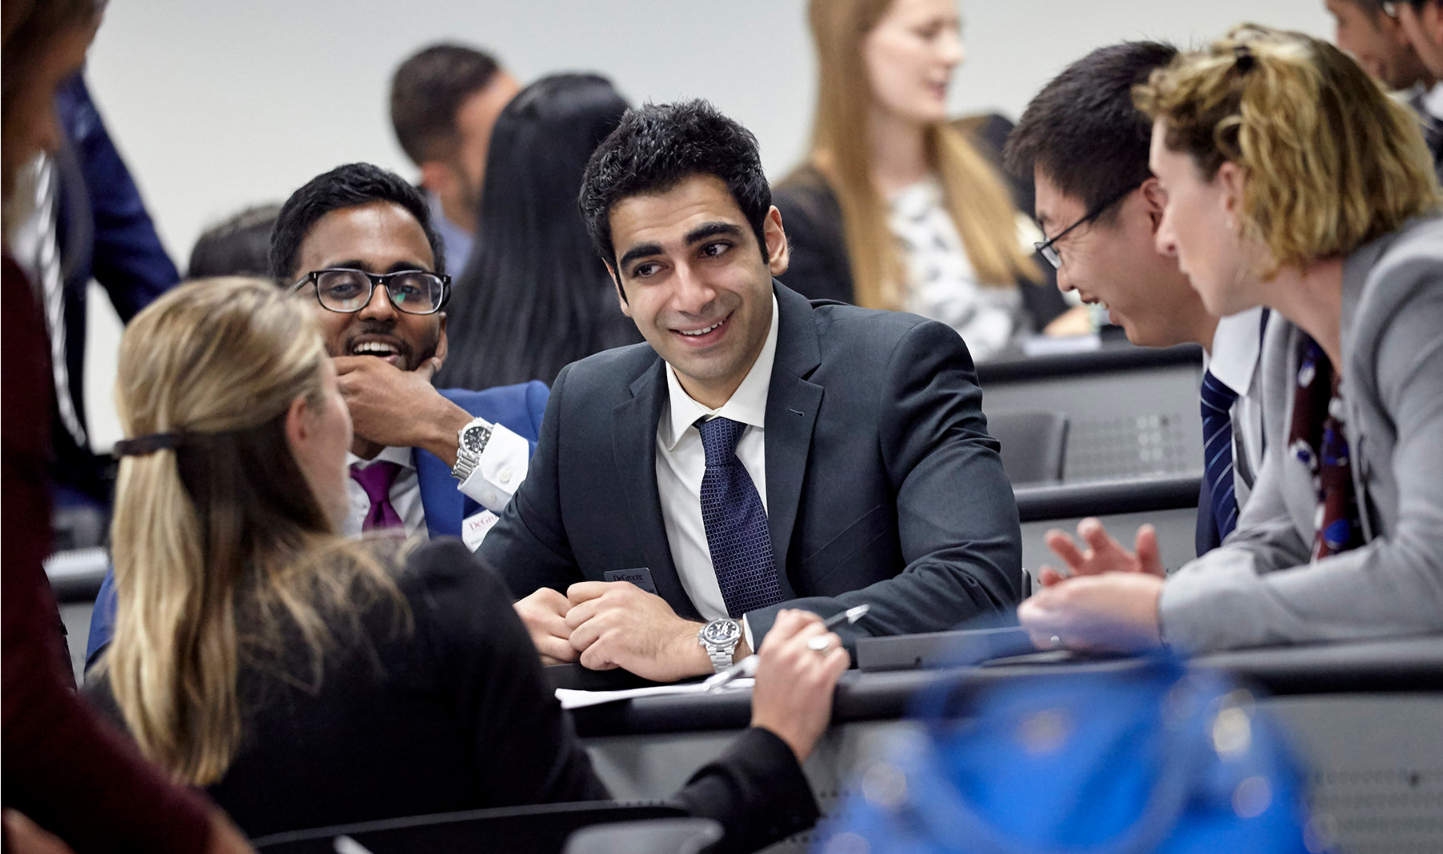 McMaster graduates are some of the most employable in Canada, according to the new QS employability rankings. McMaster placed 93rd worldwide. Photo by Kevin Patrick Robbins